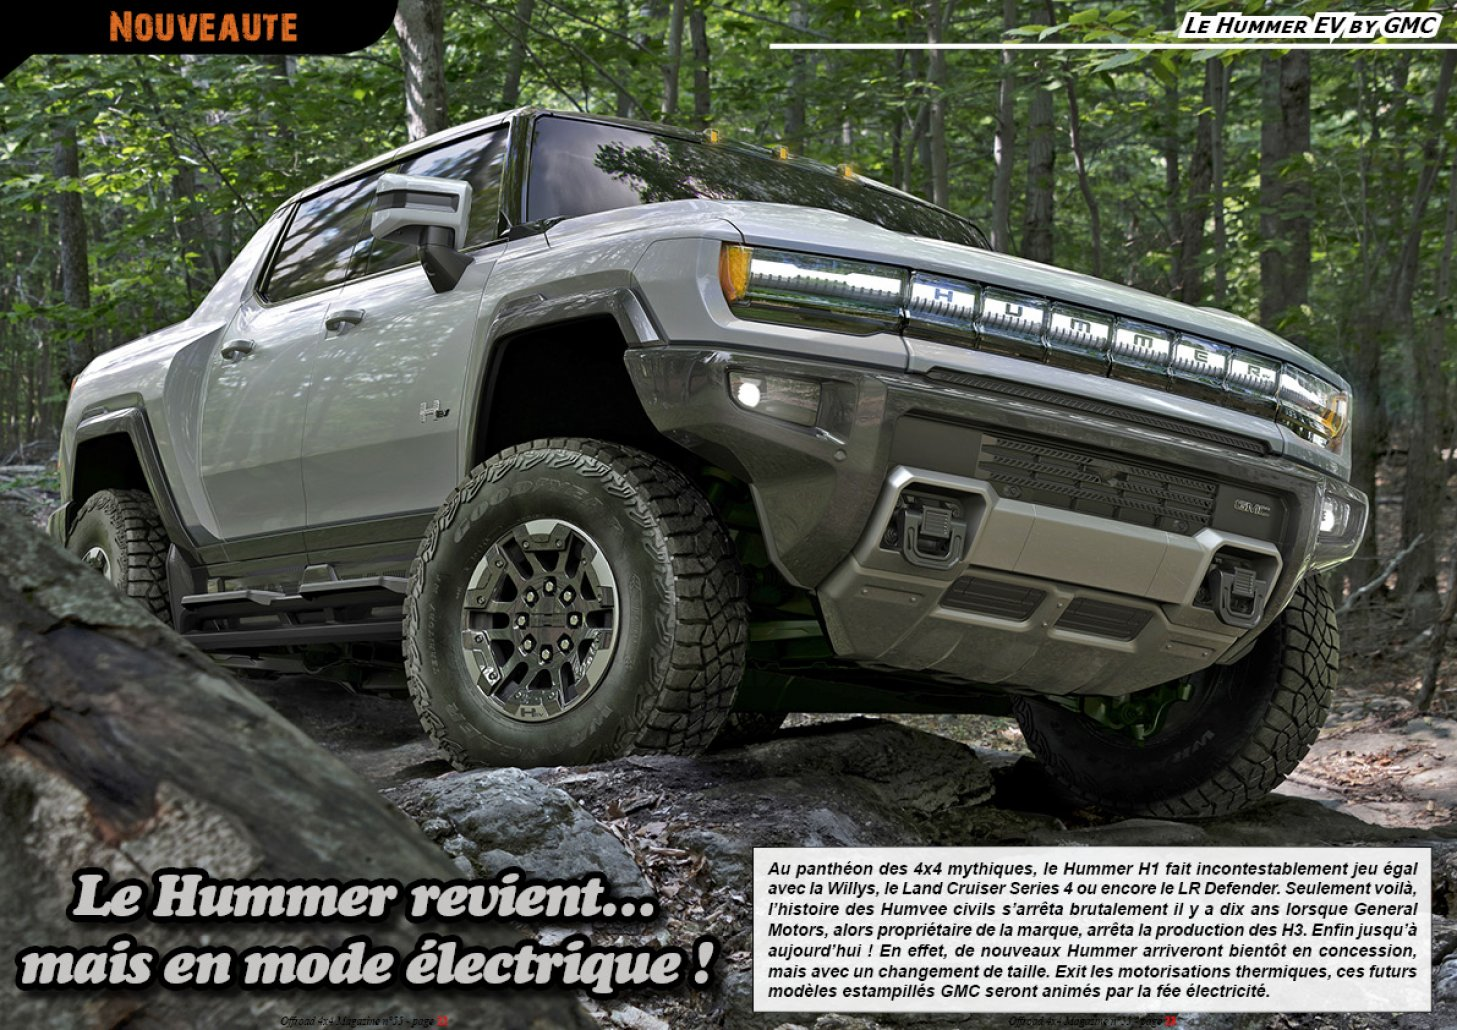 Le Hummer EV by GMC